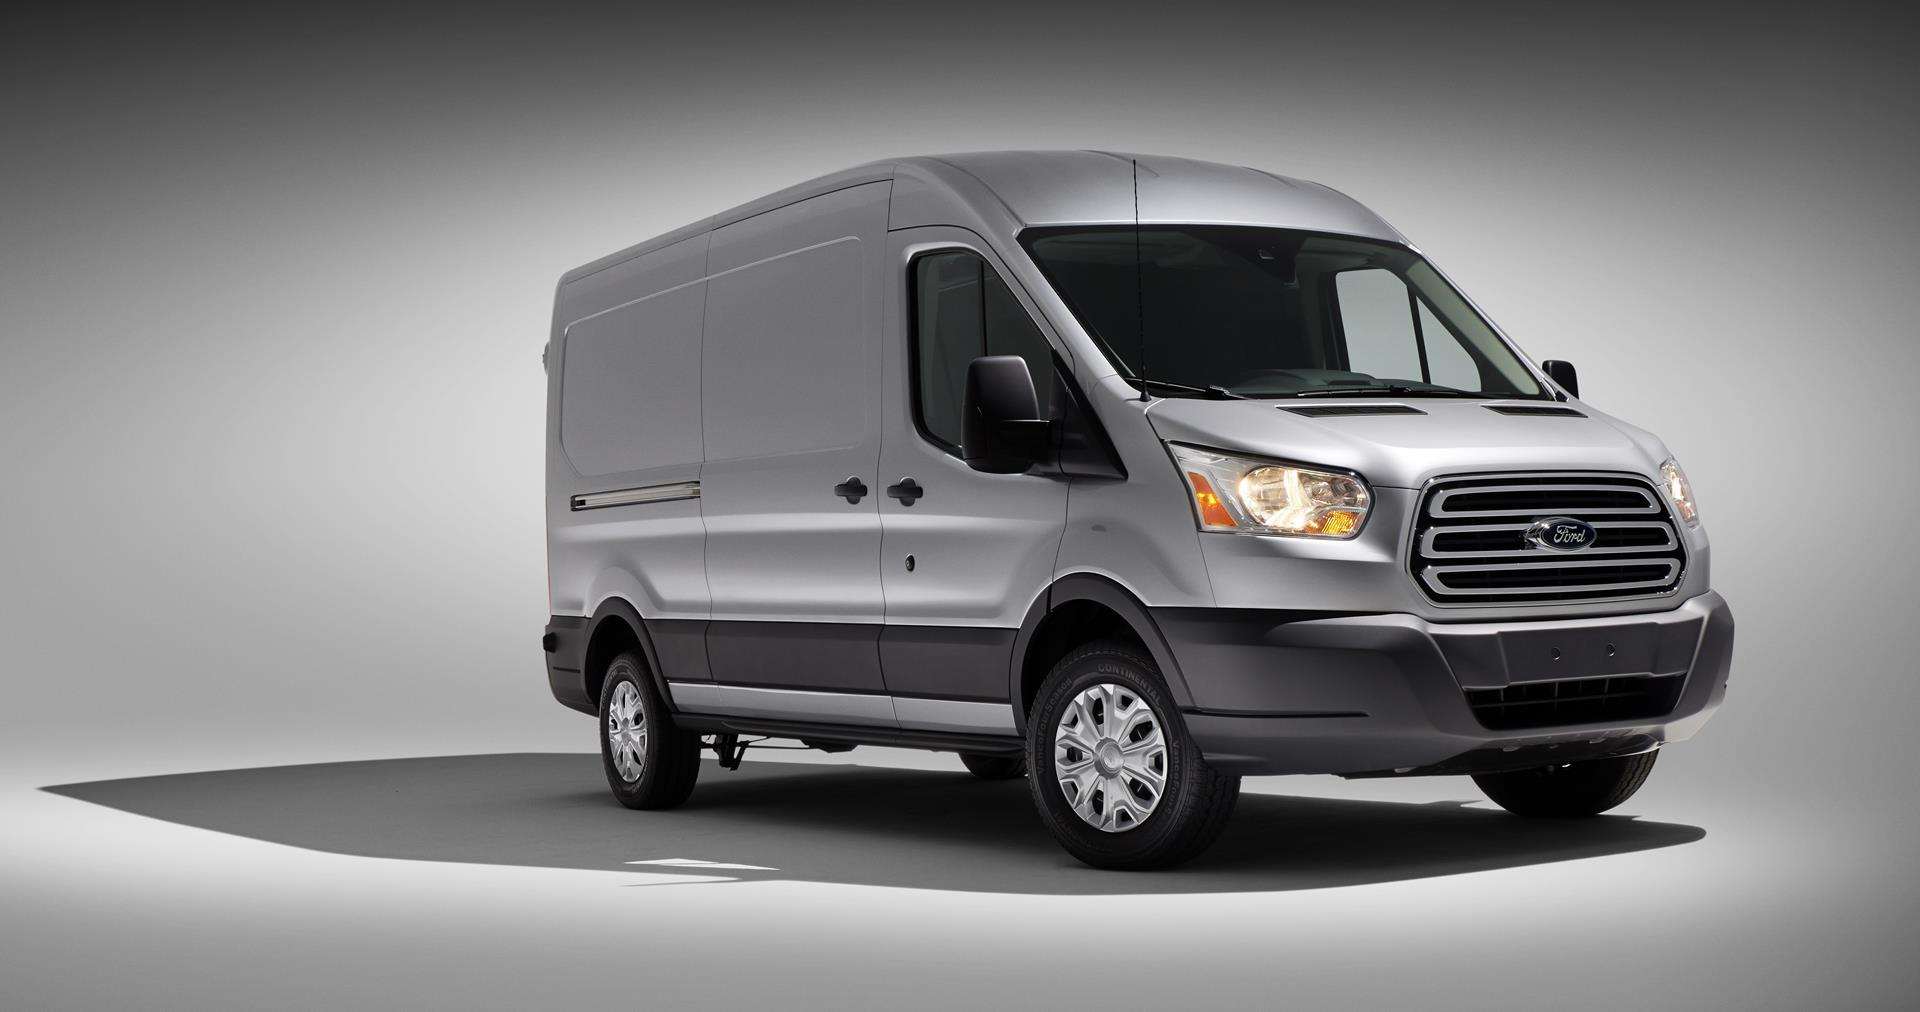 2016 ford transit technical specifications and data engine dimensions and mechanical details. Black Bedroom Furniture Sets. Home Design Ideas